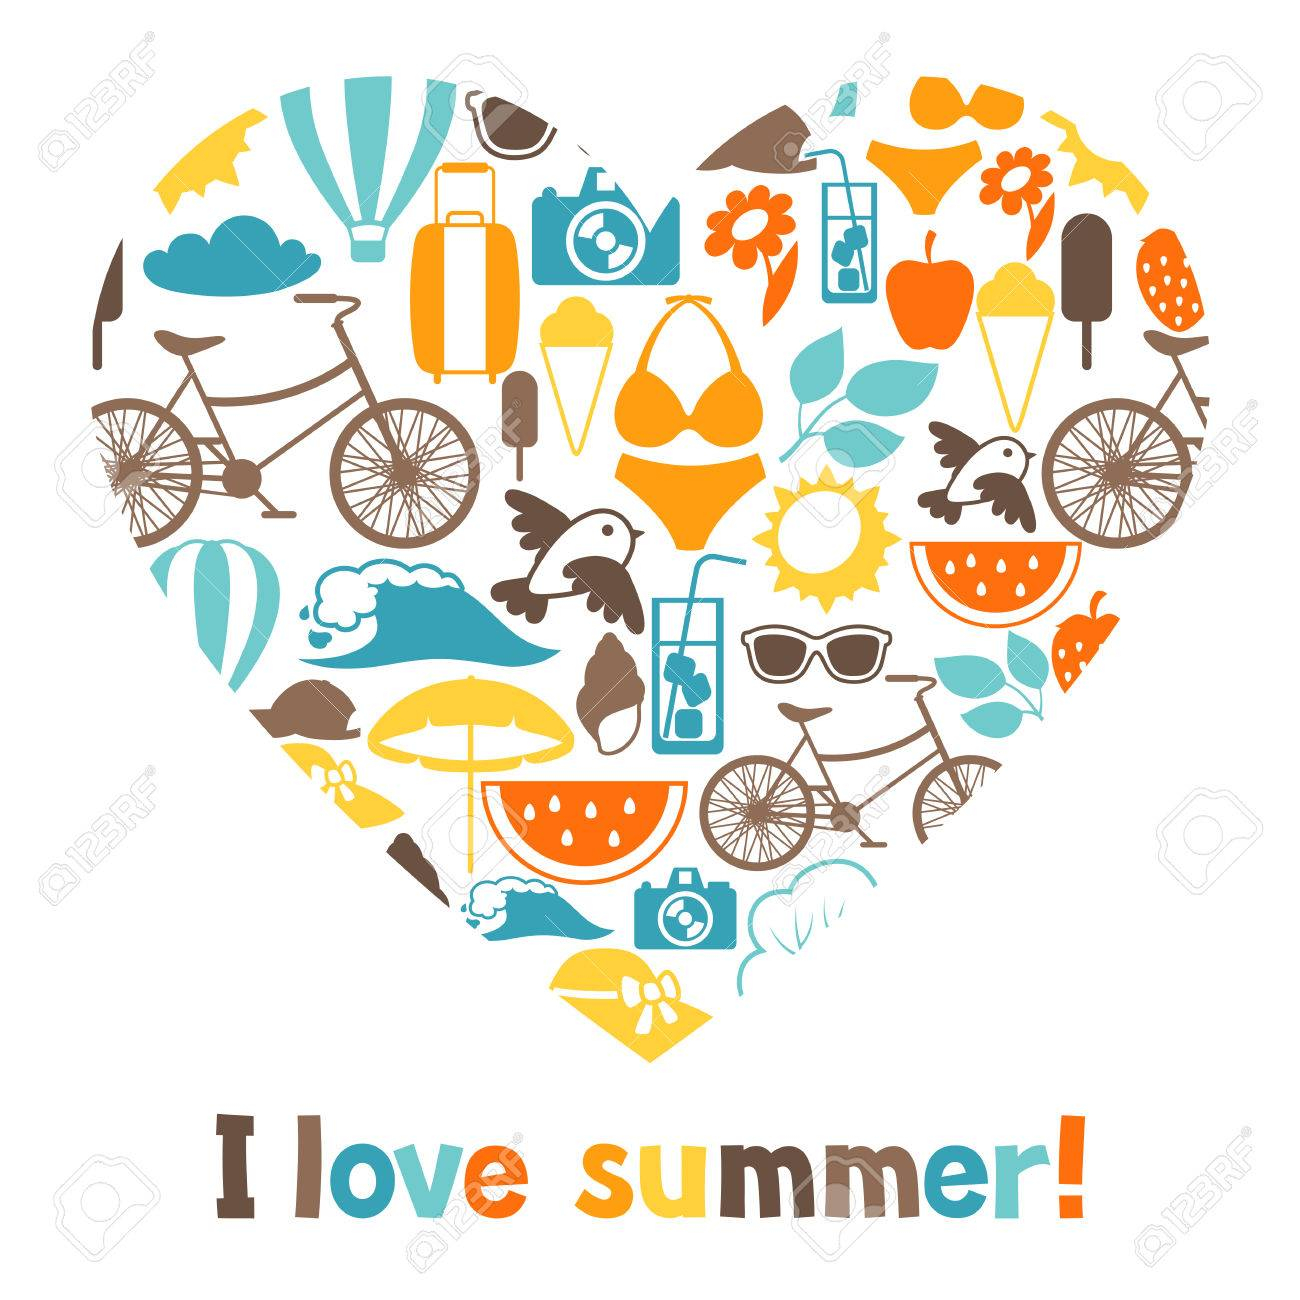 Background With Stylized Summer Objects. Design For Cards, Covers,  Brochures And Advertising Booklets